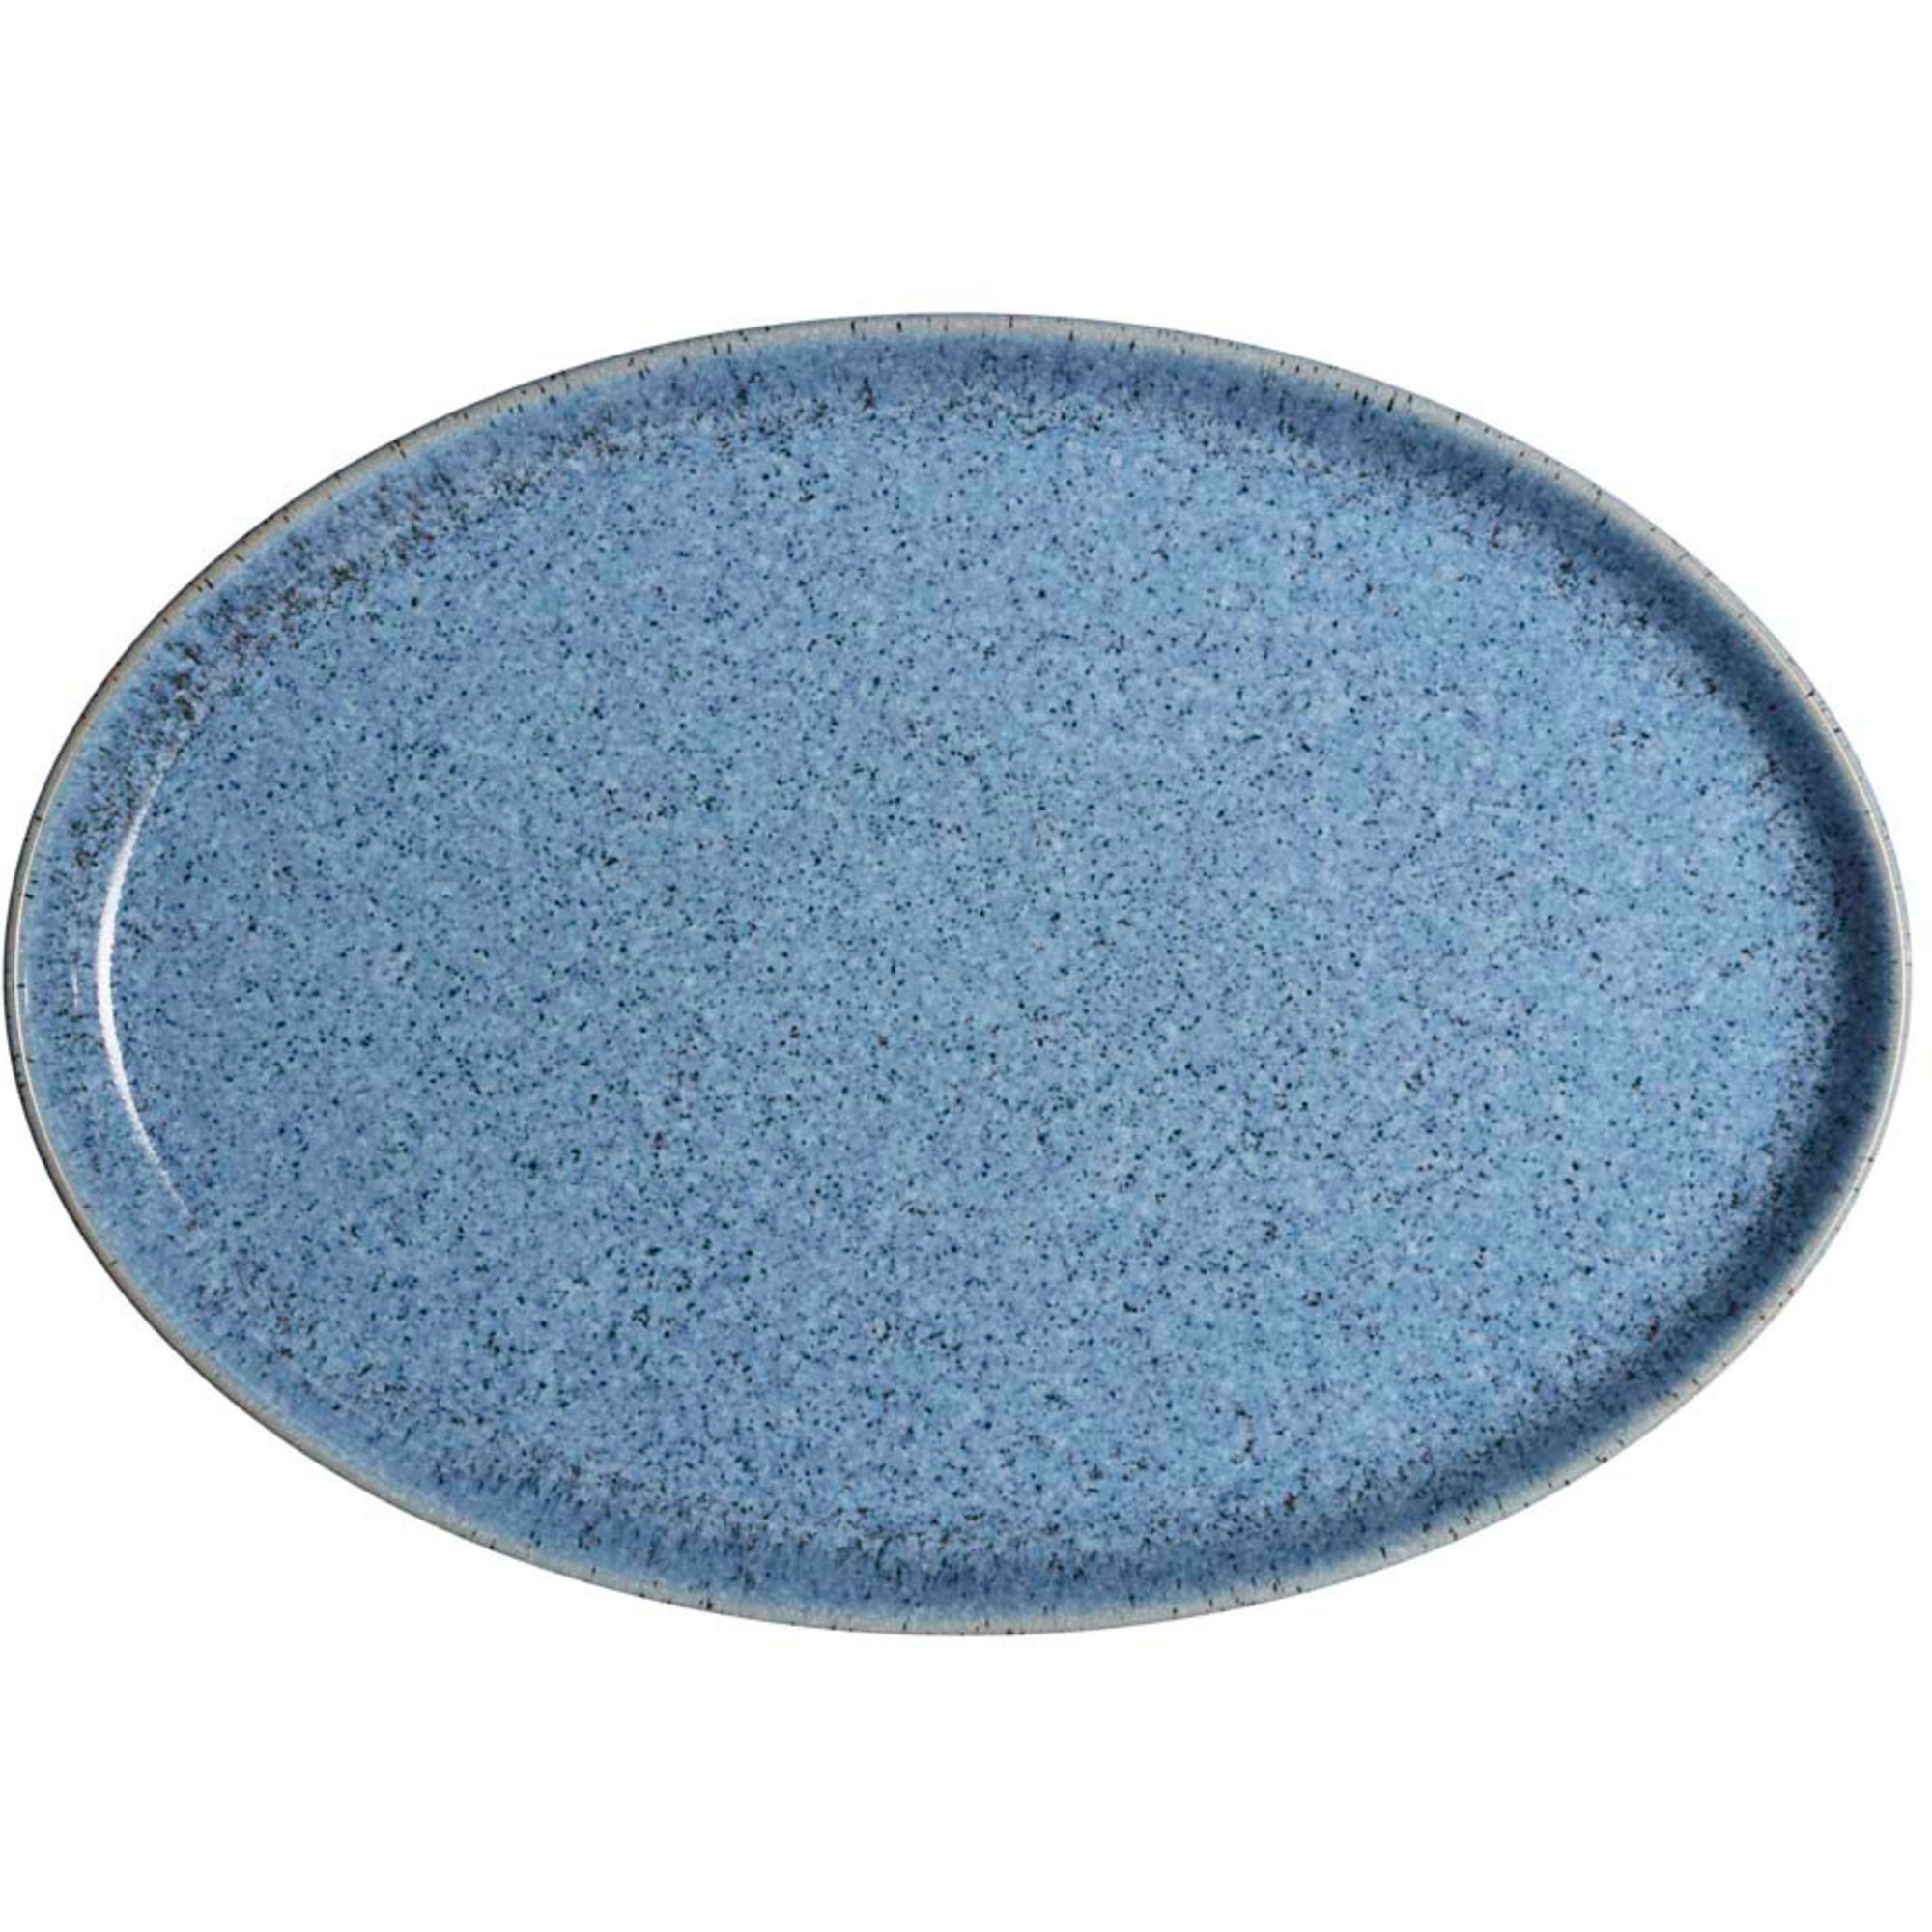 Denby Studio Blue Flint Medium Oval Tallrik 27 cm